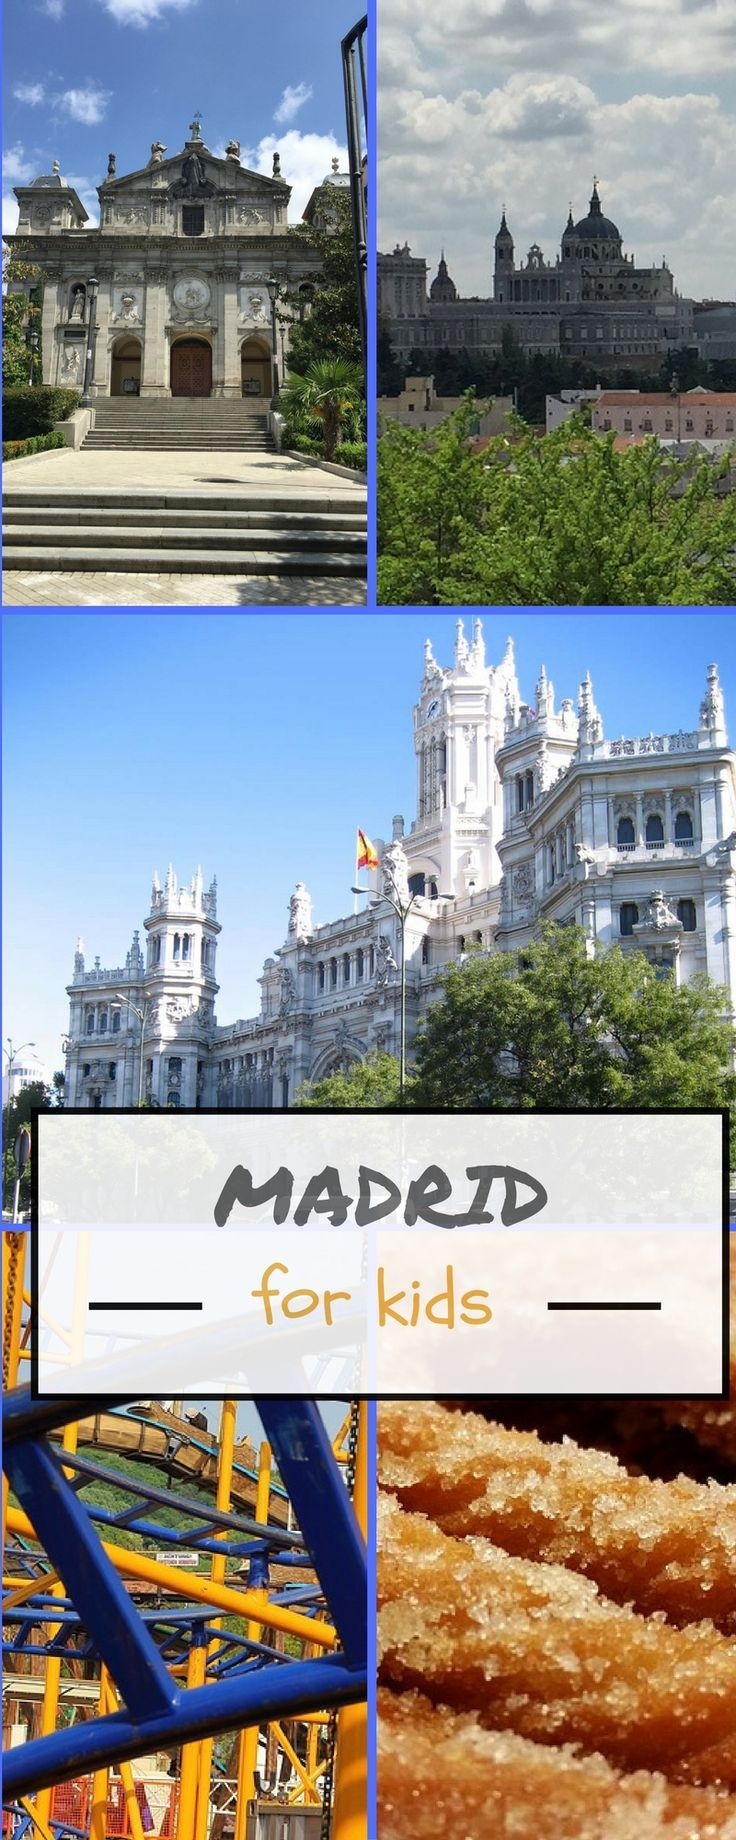 What are the top 5 things to do in Madrid with kids? The capital of Spain has plenty on offer for families: from sightseeing to museum visits and theme parks, find out the best family friendly attractions in Madrid and how to make the most of a family city break in Madrid